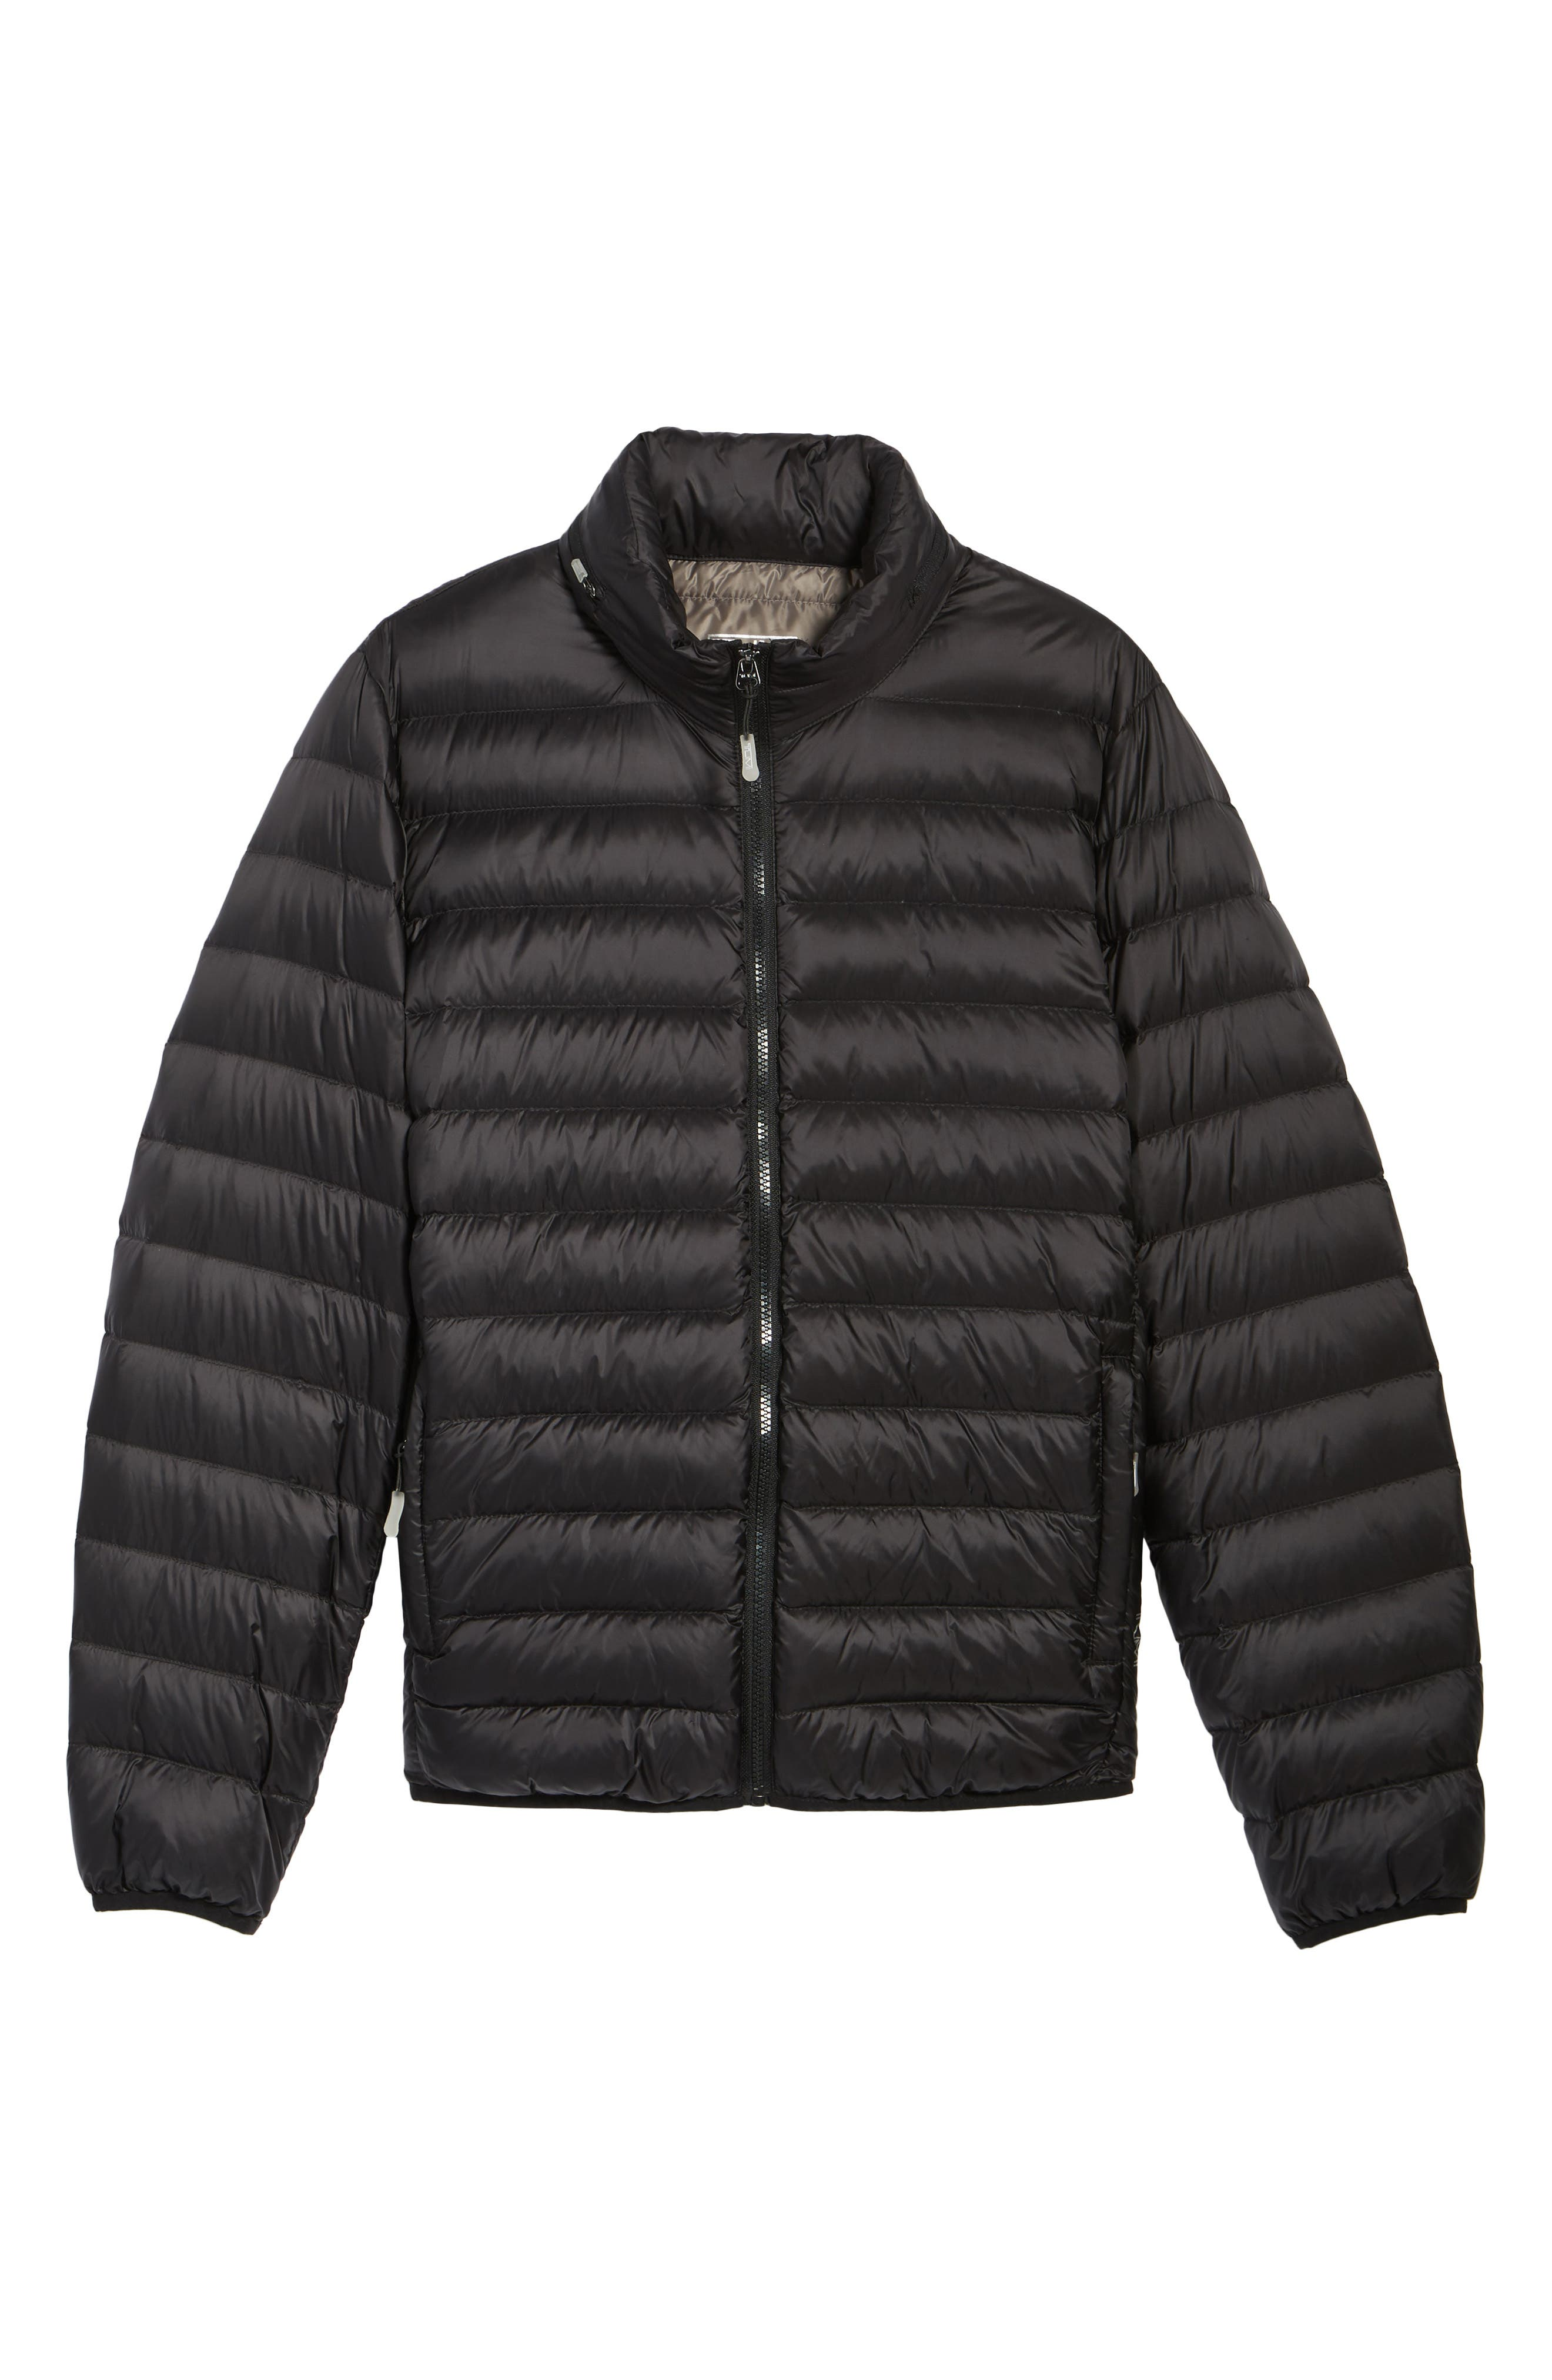 Pax Packable Quilted Jacket,                         Main,                         color, 001